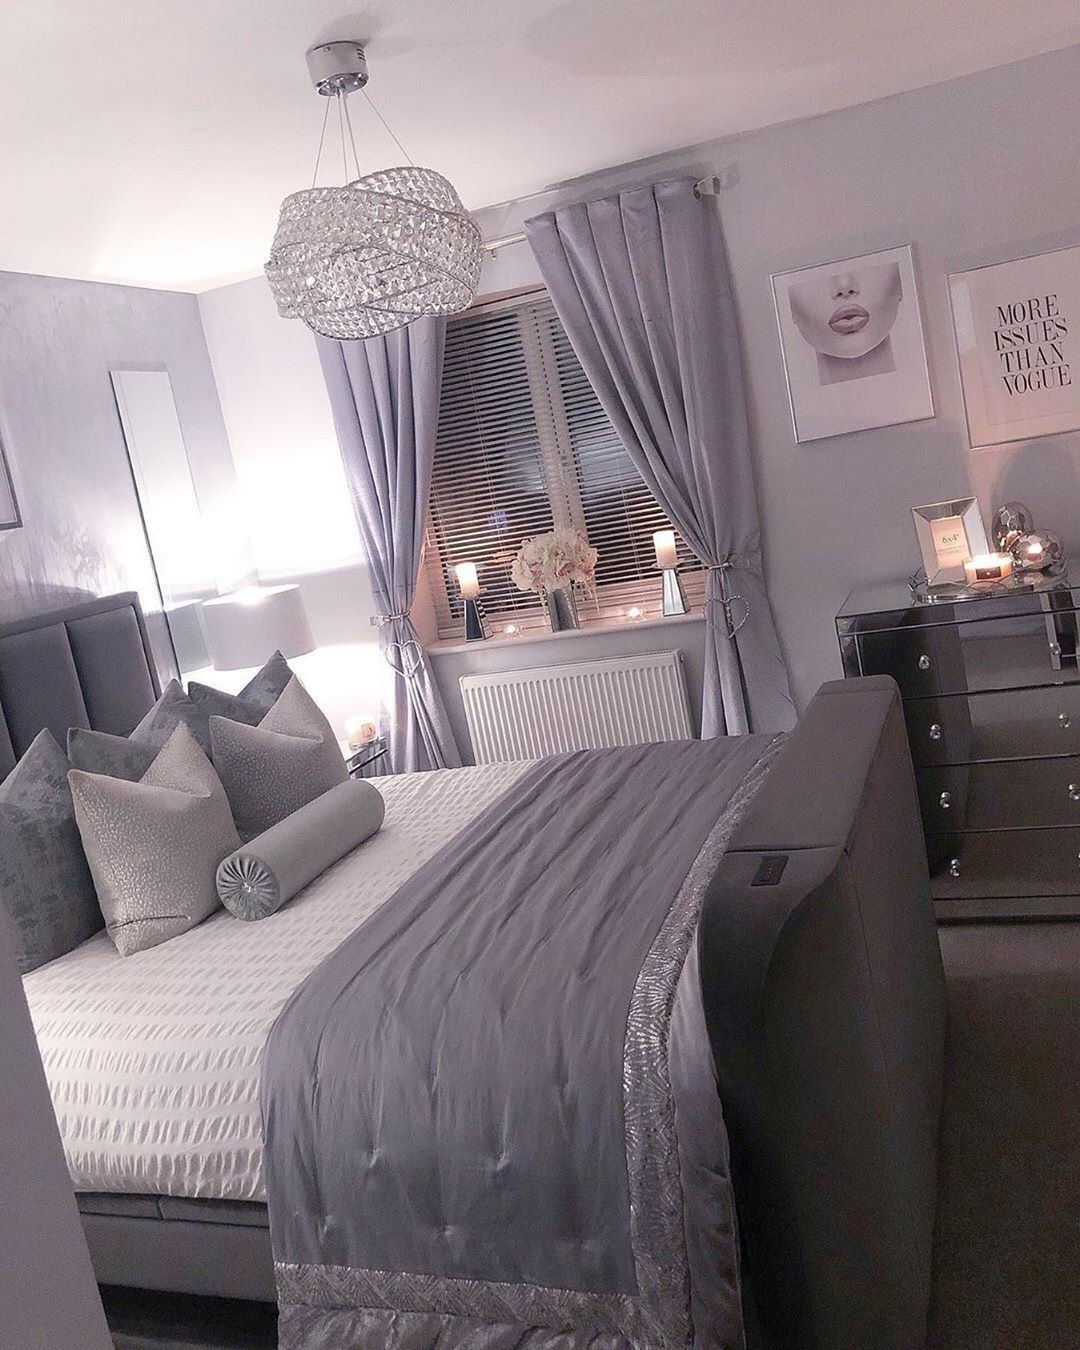 50 Grey living Room ideas for Gorgeous and Elegant Spaces,grey living room inspiration,grey living room walls,dark grey living room ideas